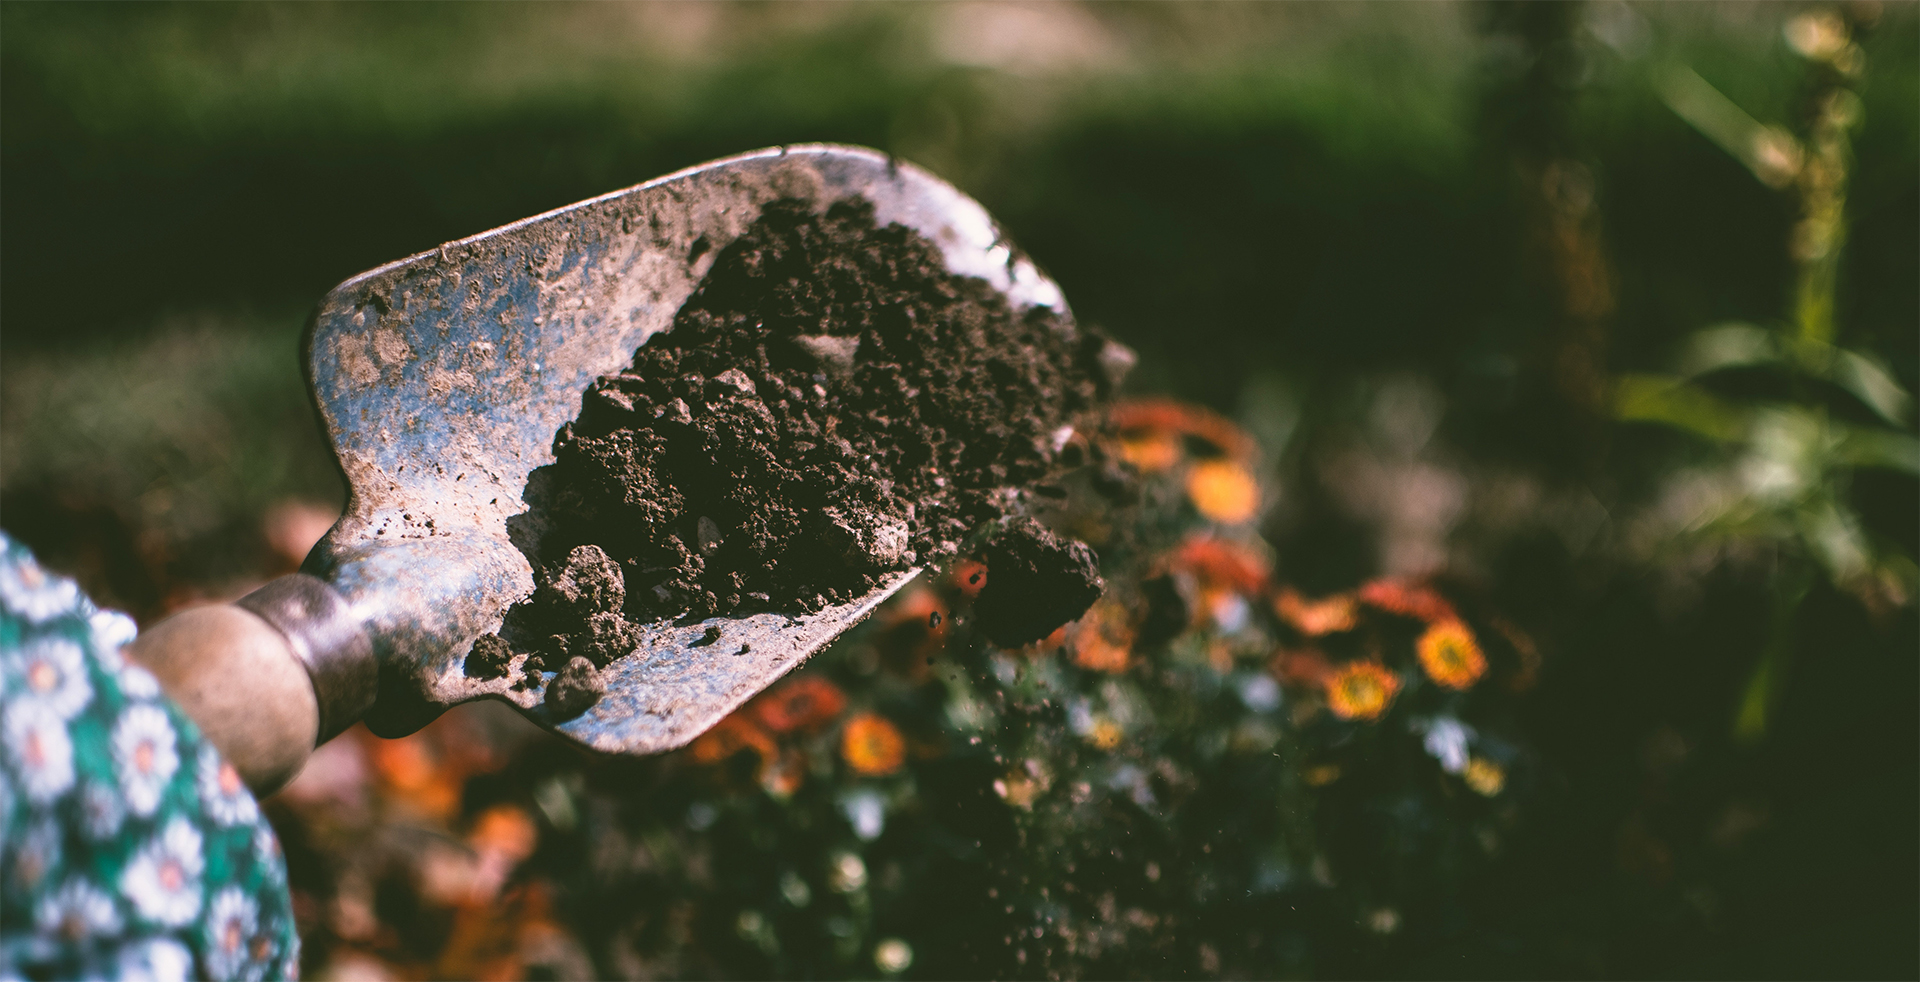 Garden spade lifted with soil, taking a deeper look at soil nutrients